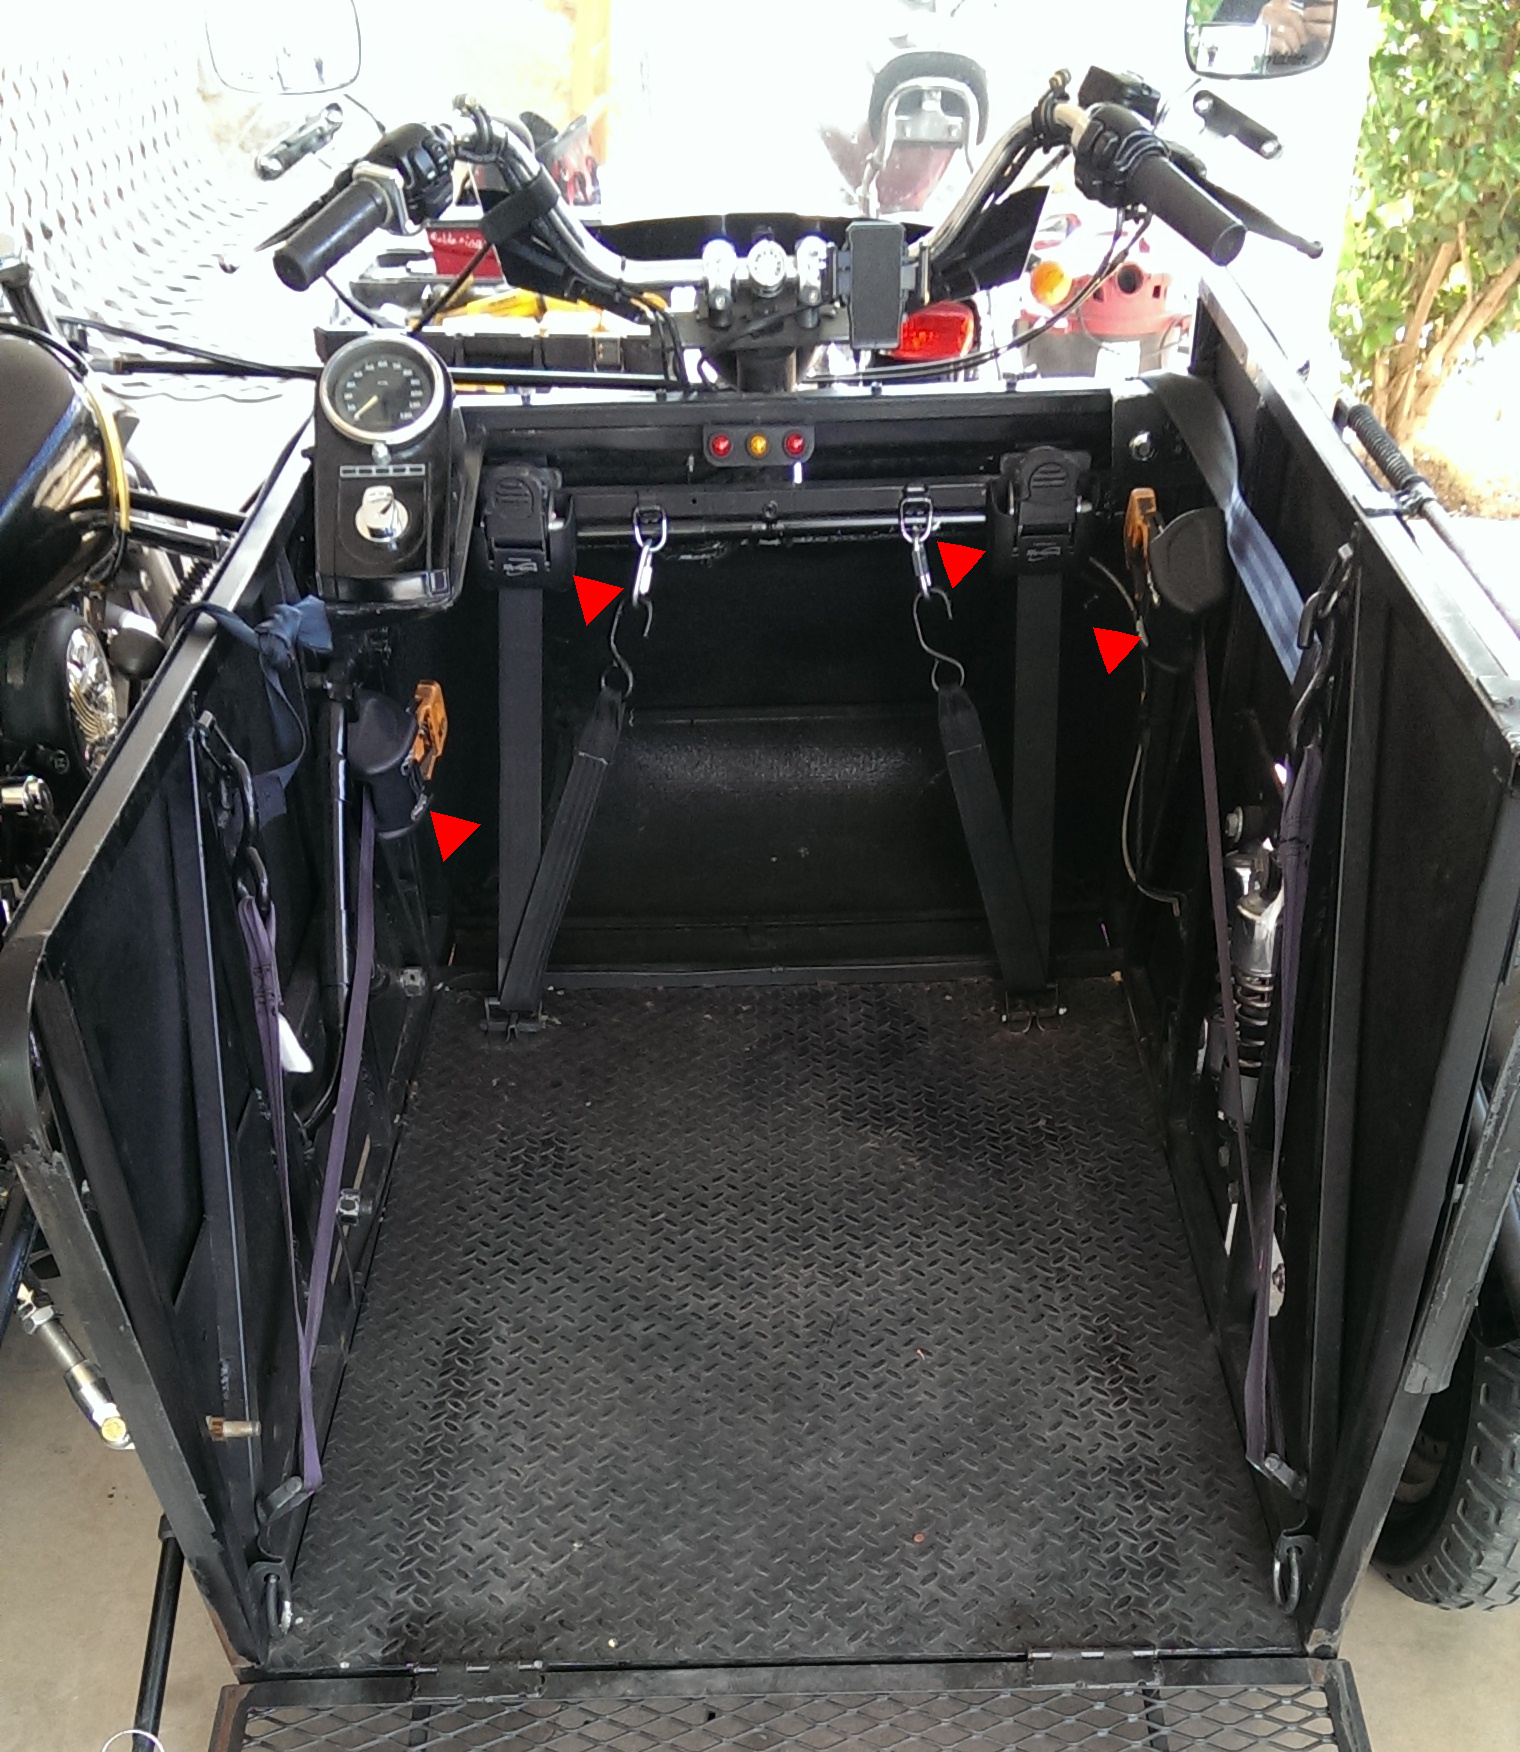 4 ratchet straps purchased from  etrailer.com  are used to secure the wheelchair to the compartment.